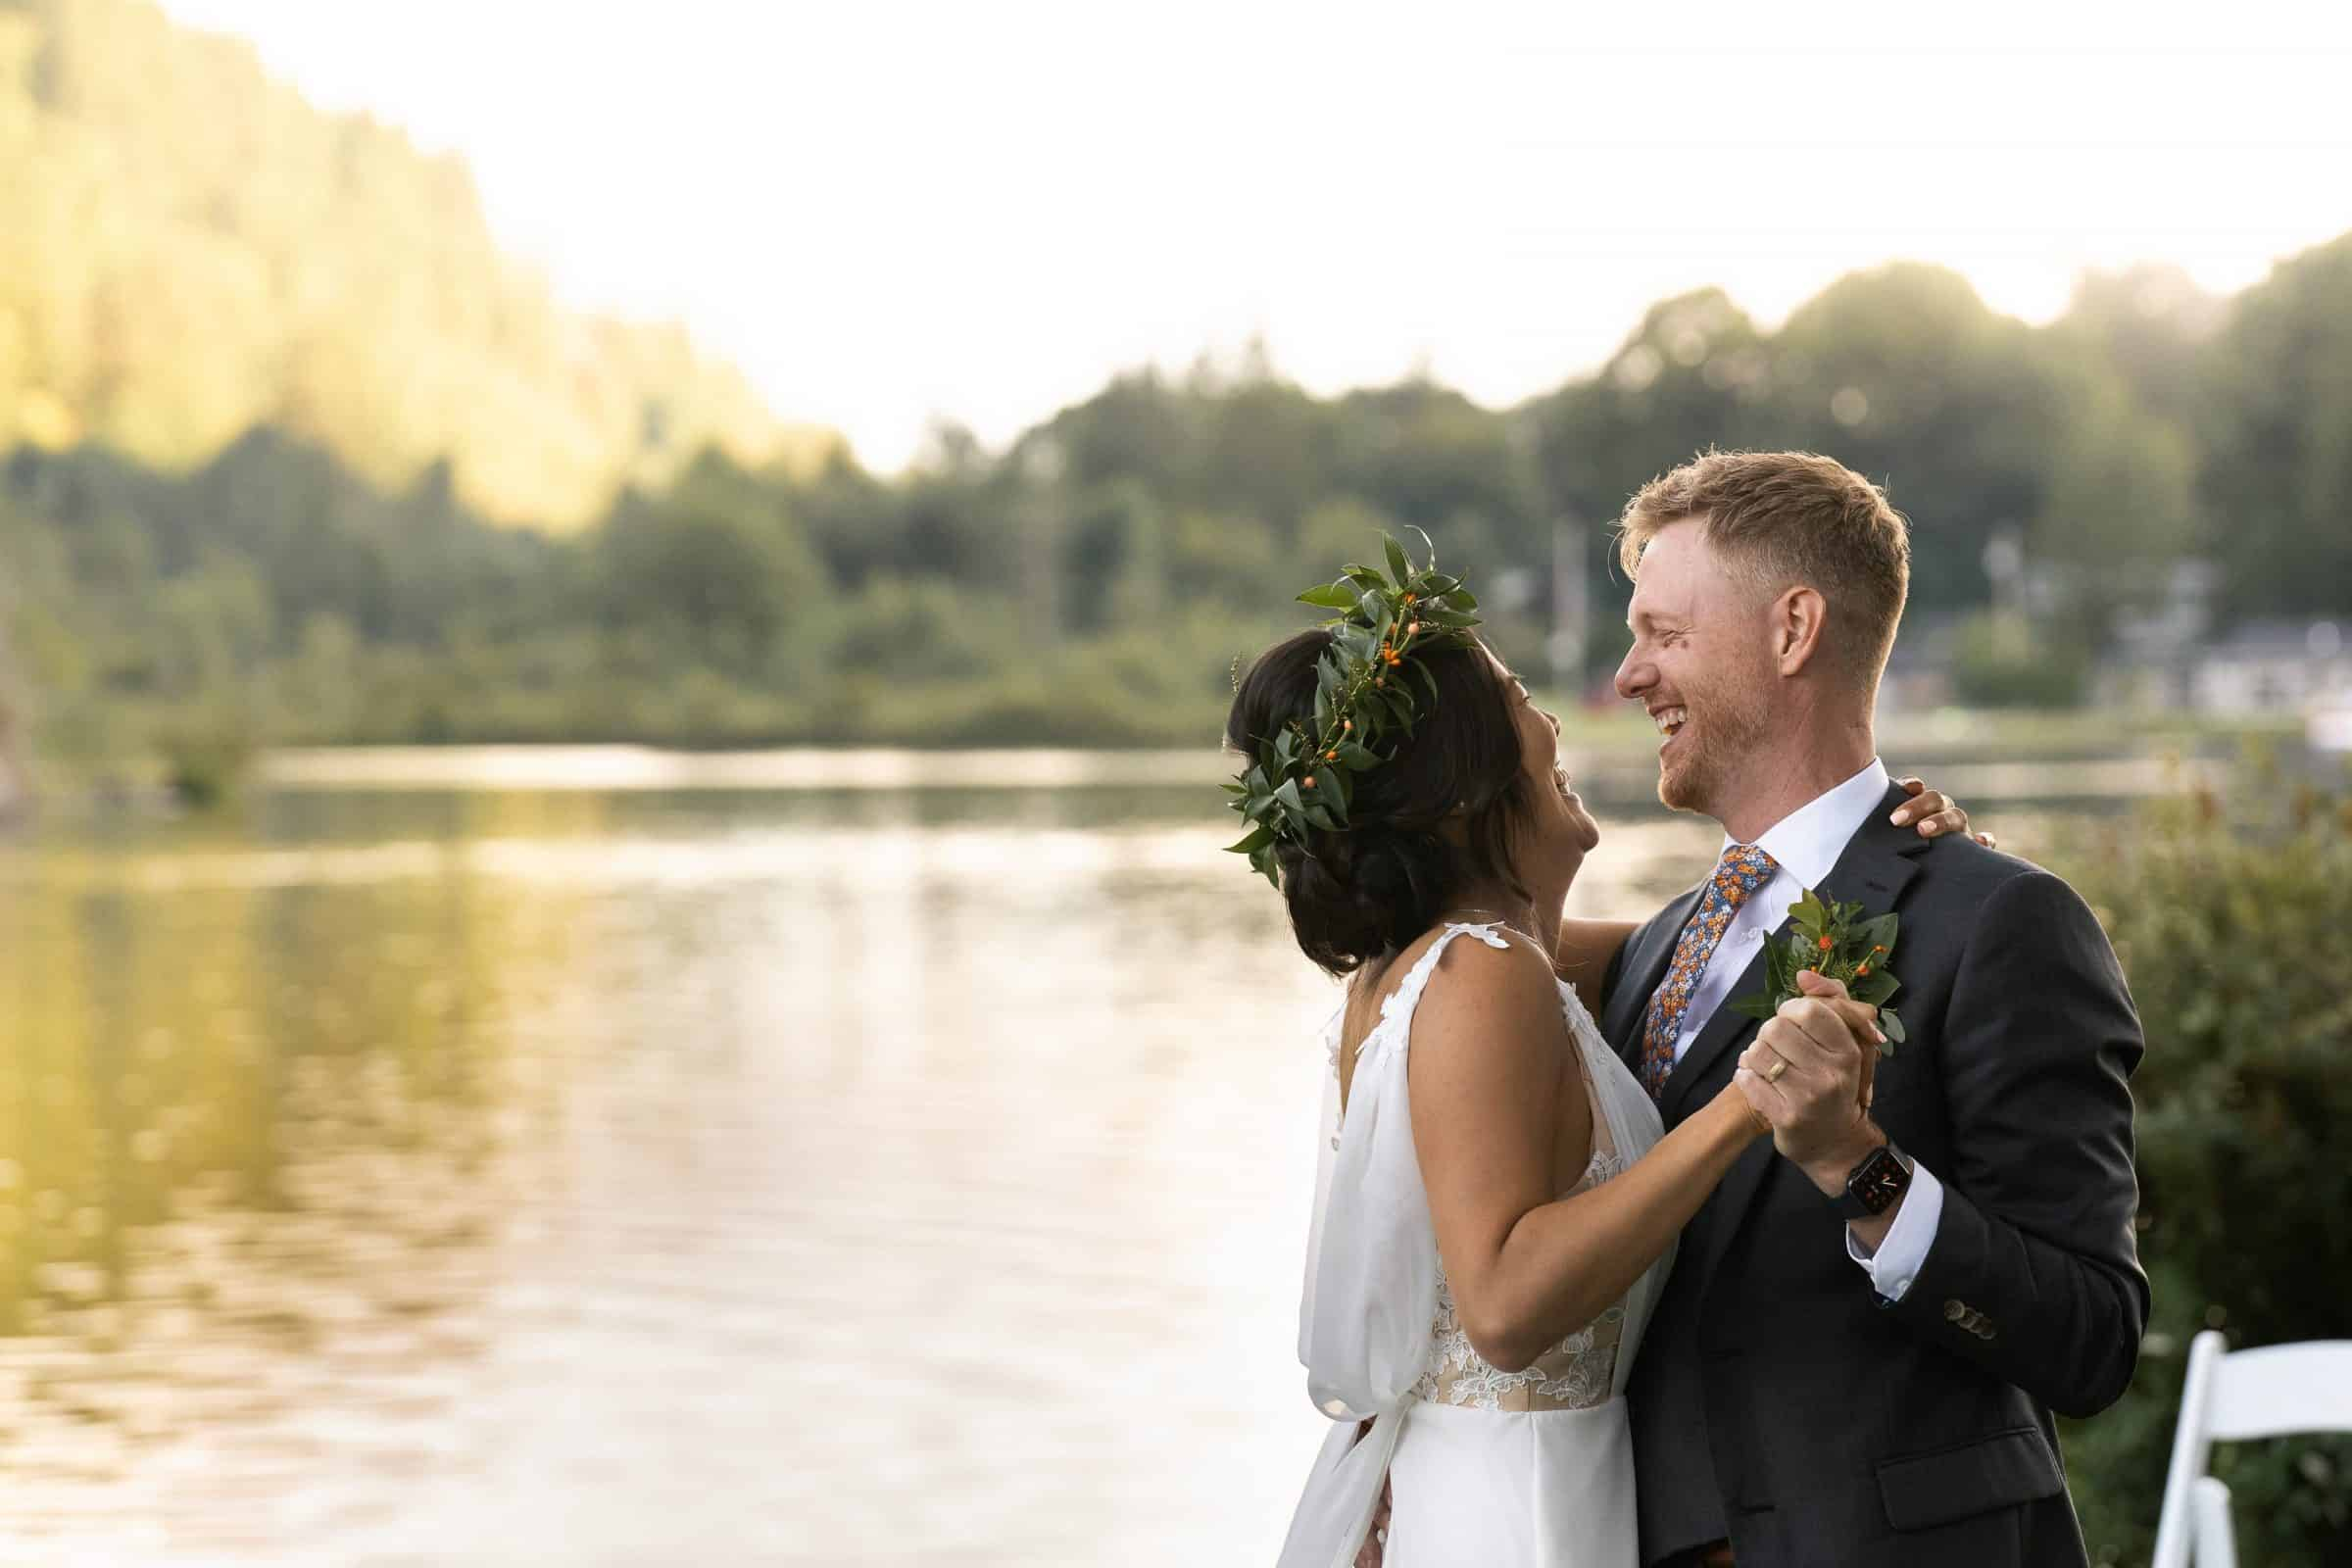 bride and groom dancing at sunset by lake and laughing